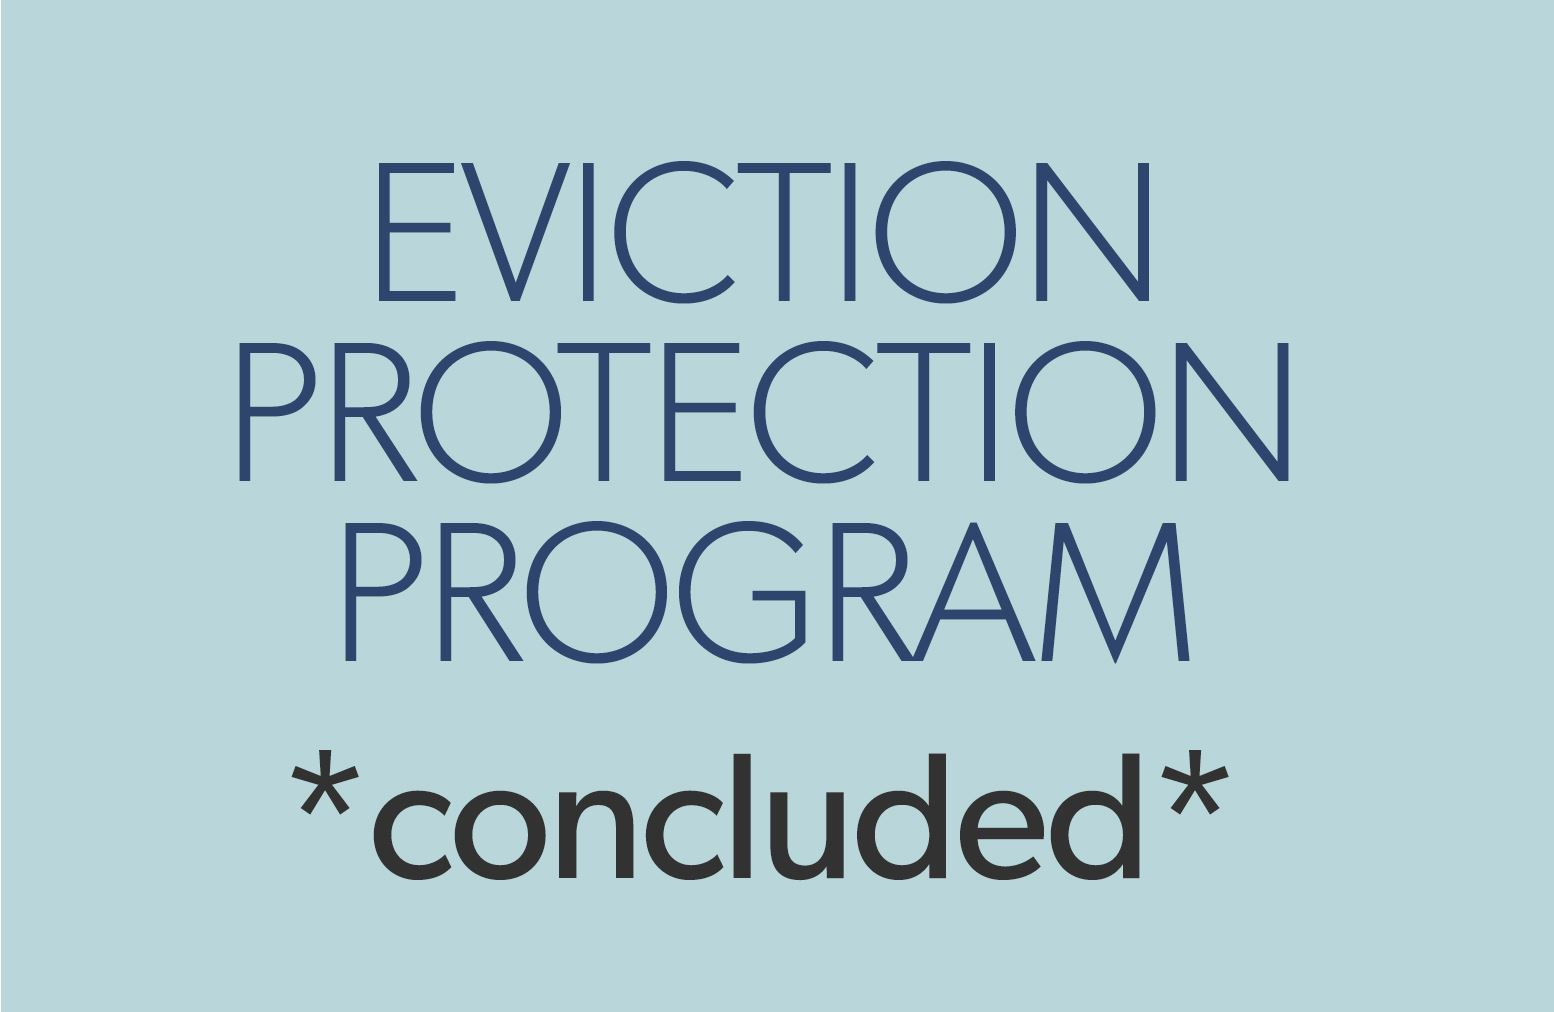 eviction protection program concluded